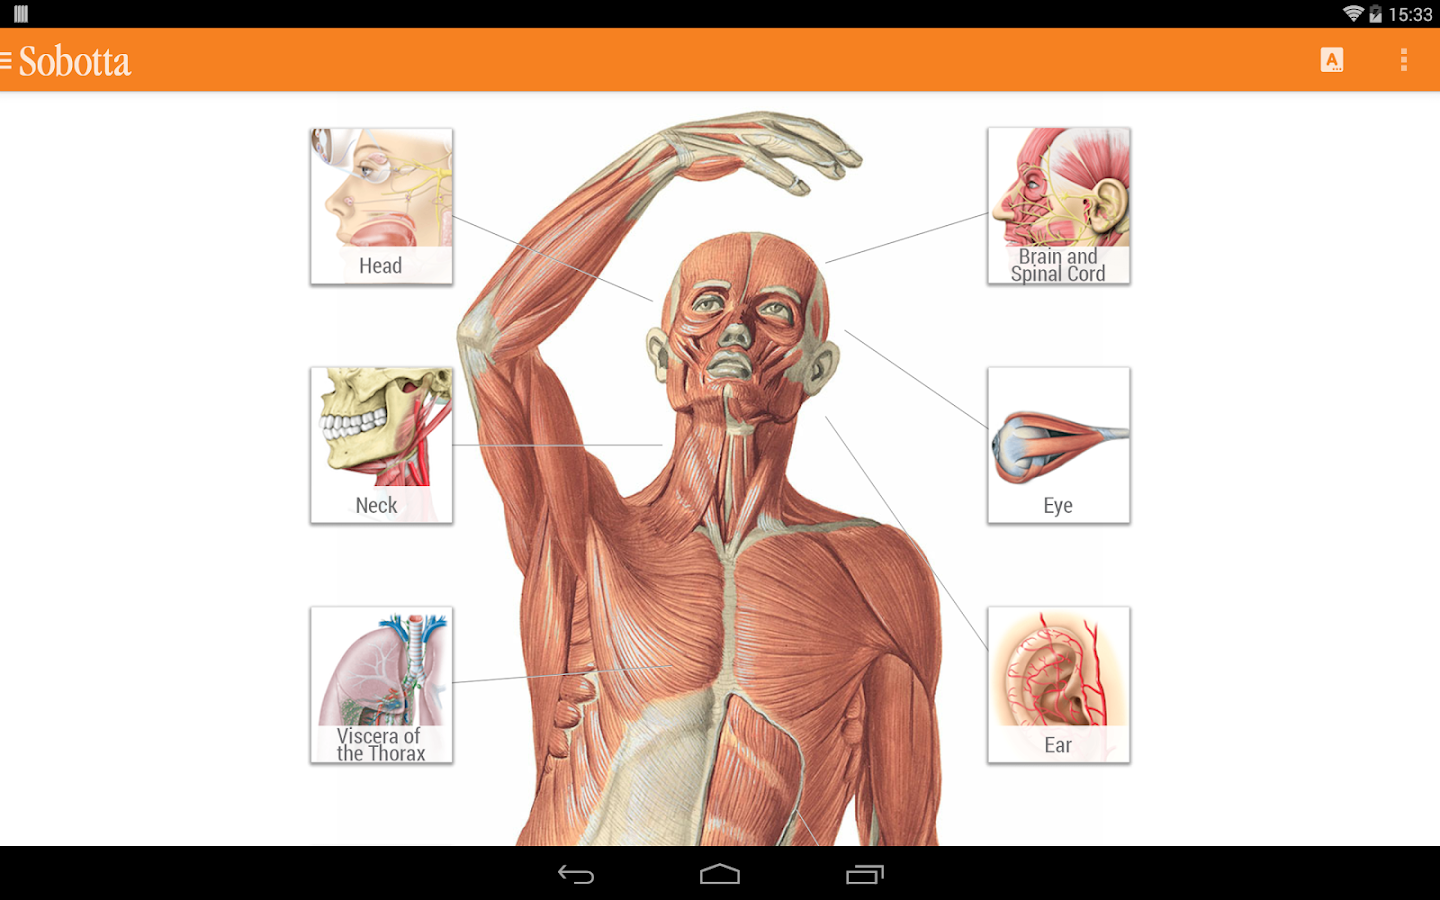 Sobotta Anatomy Atlas Screenshot 7